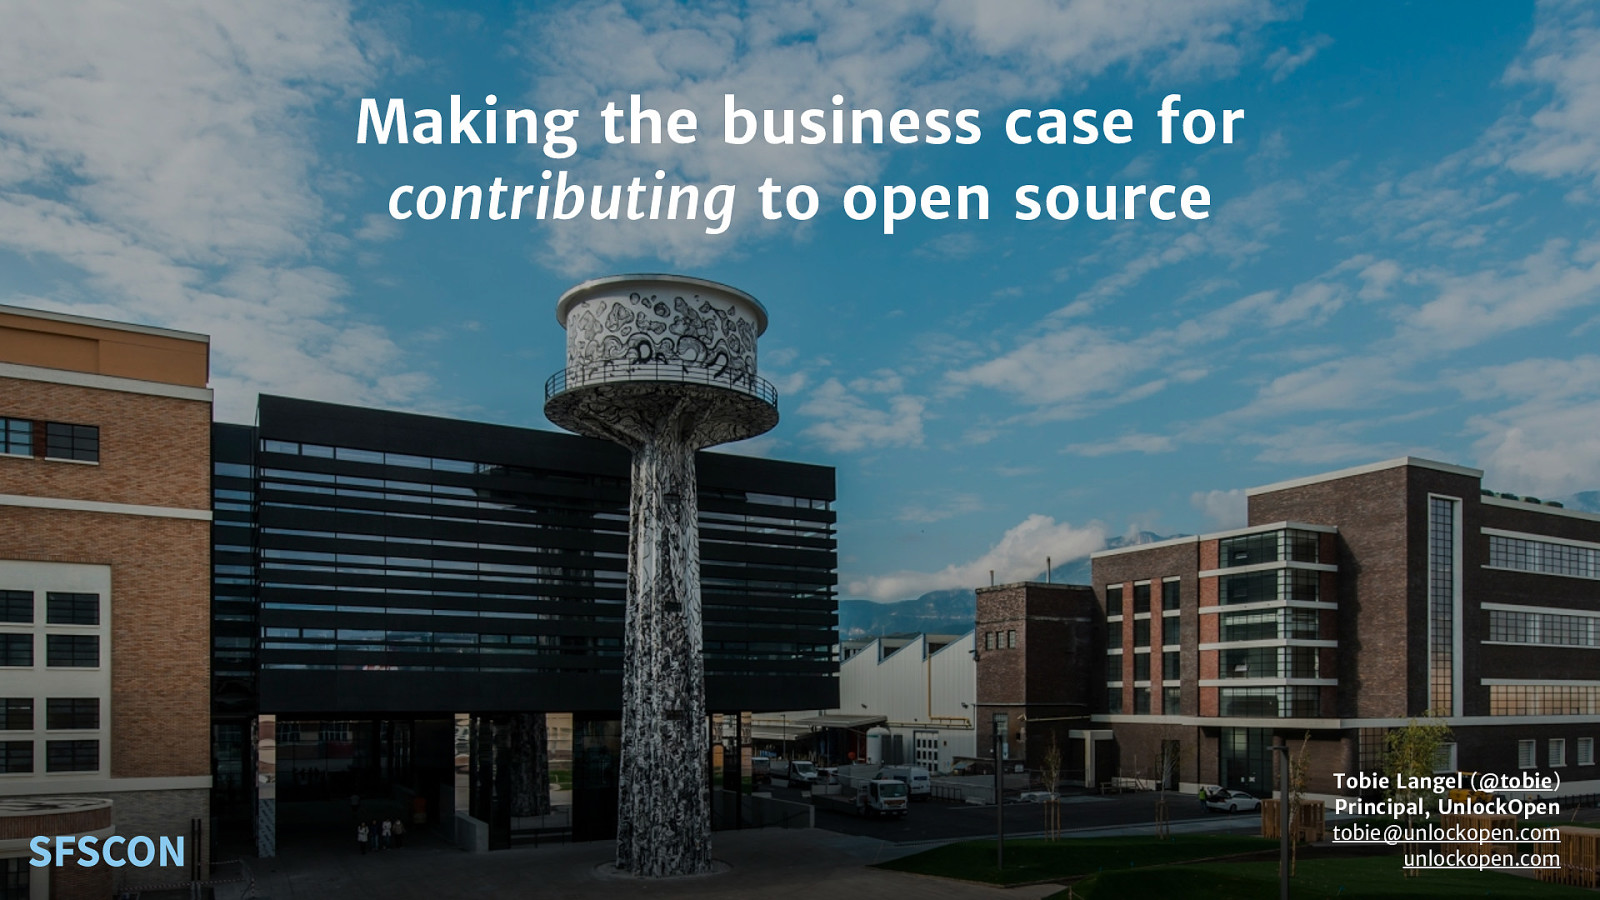 Making the business case for contributing to open source